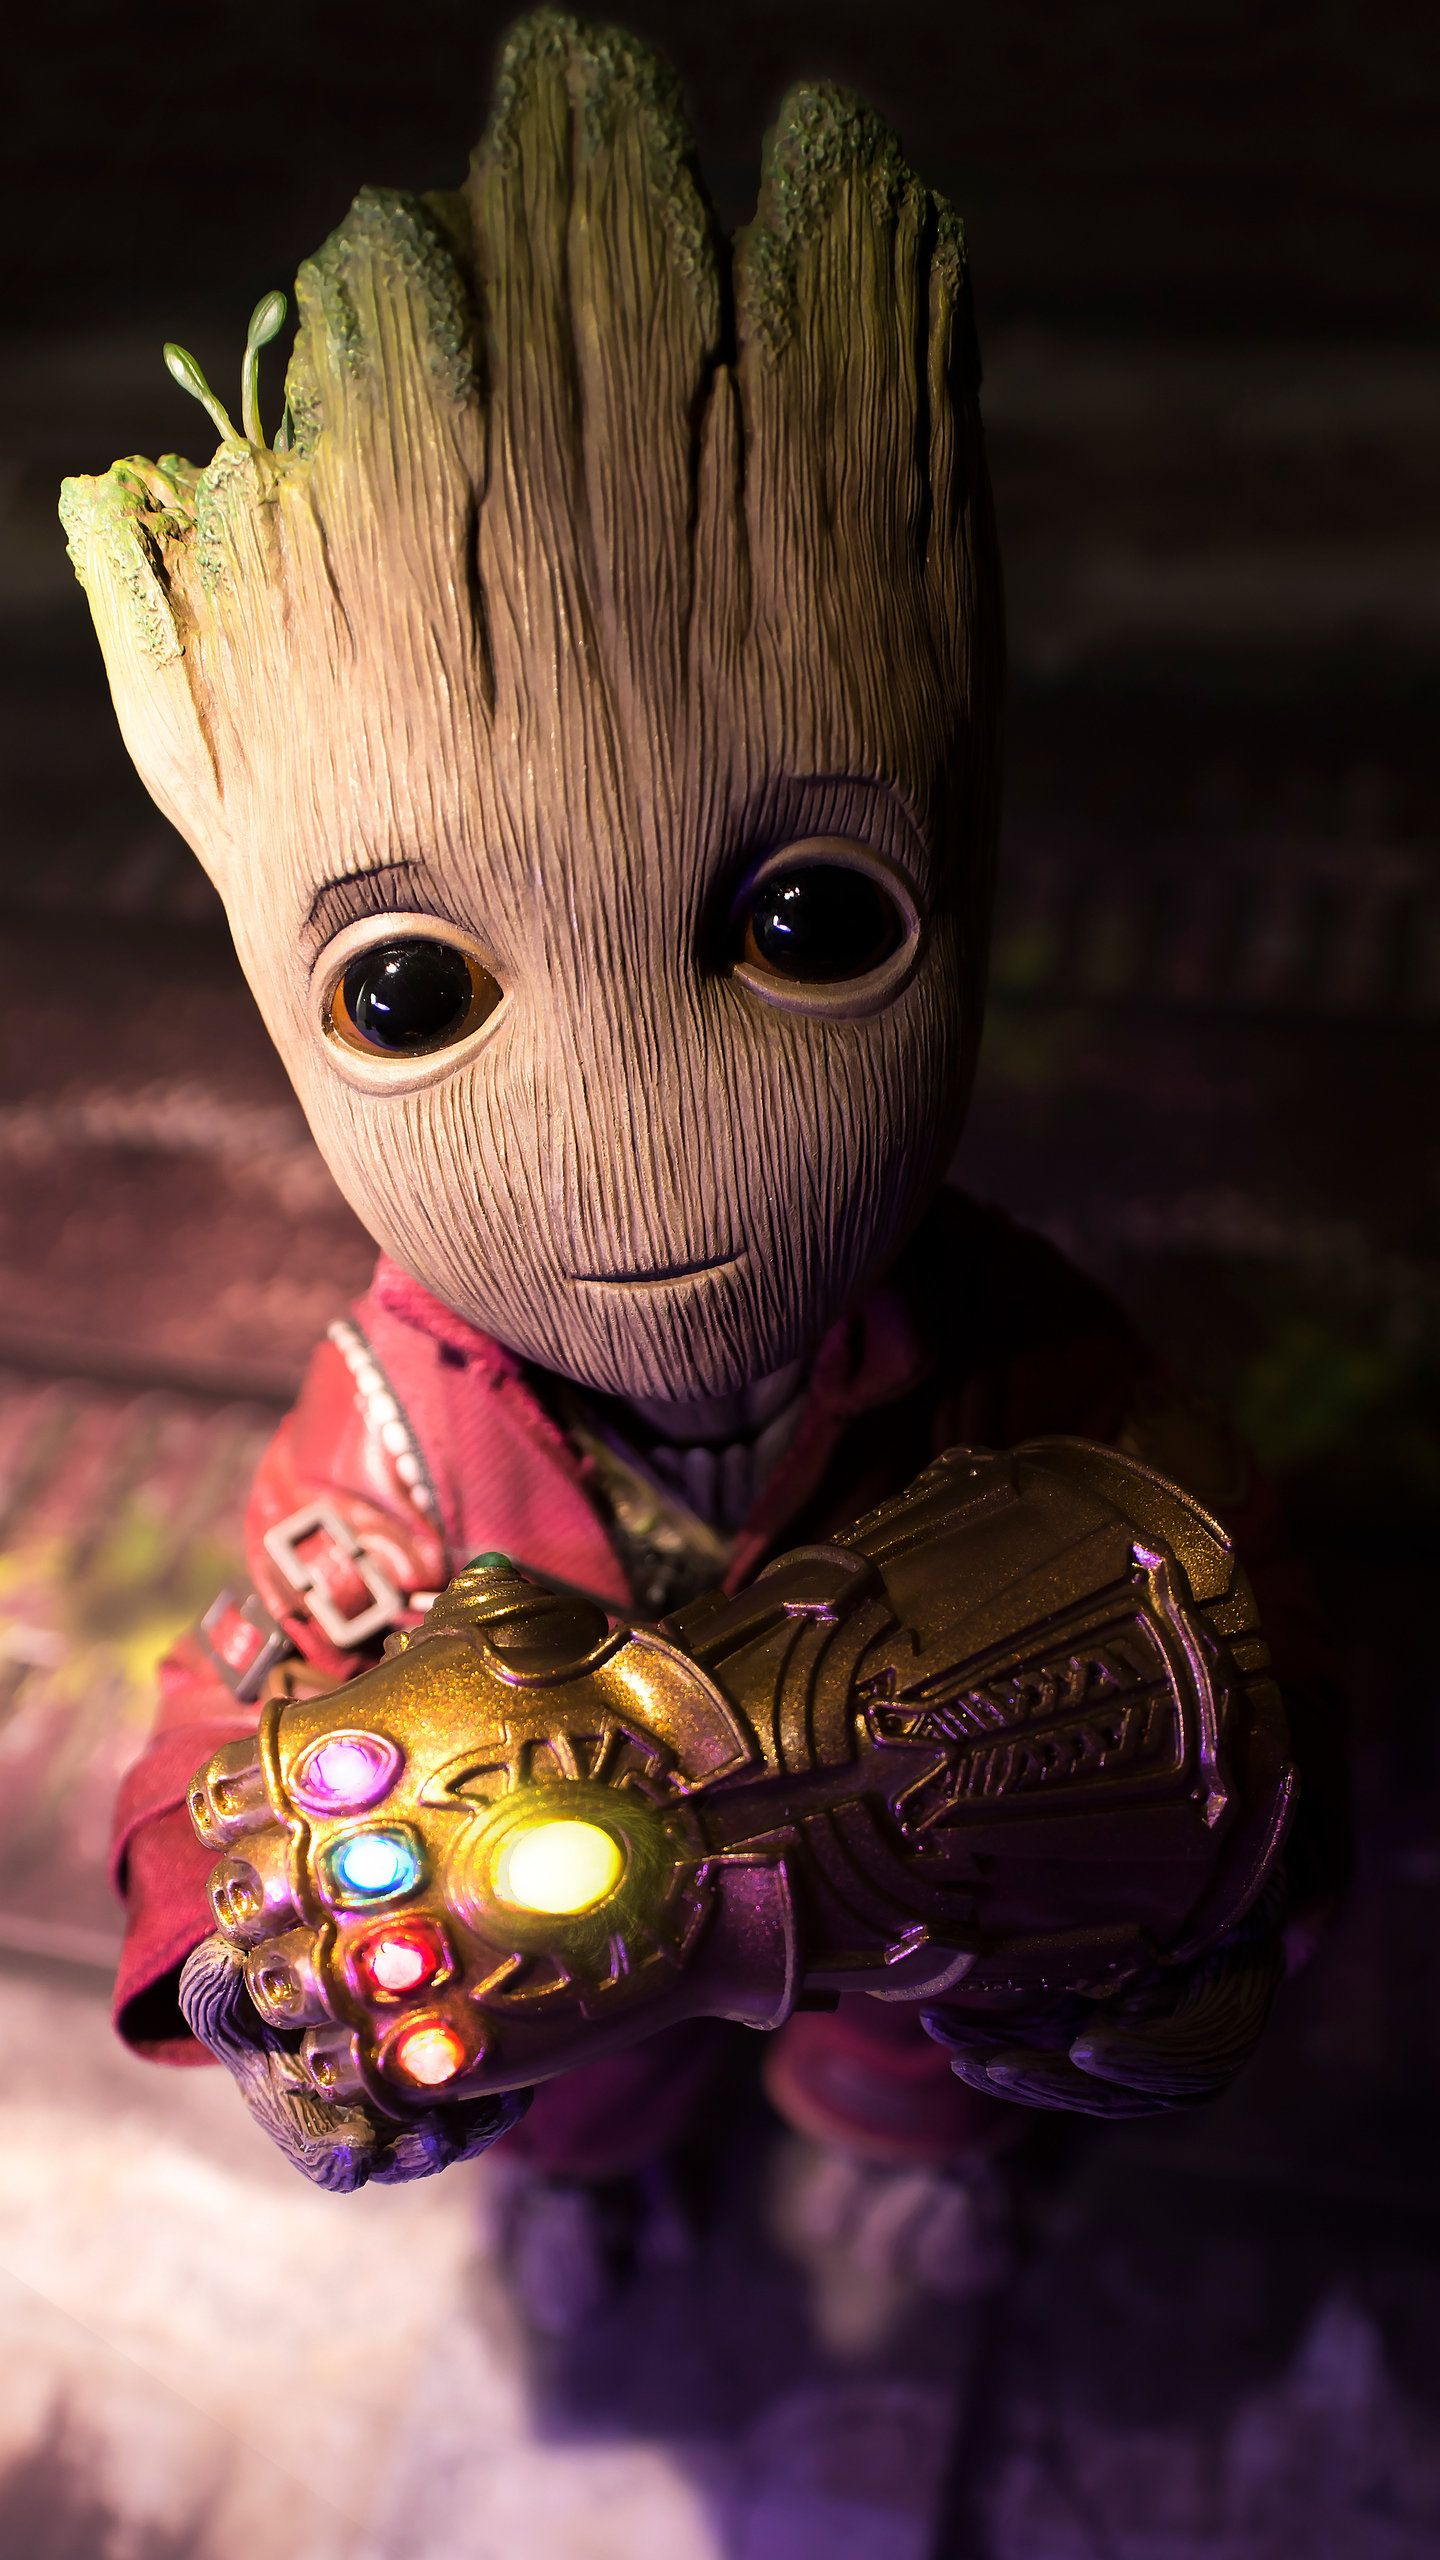 Baby Groot Found The Gauntlet Hd Wallpaper 1440x2560 In 2020